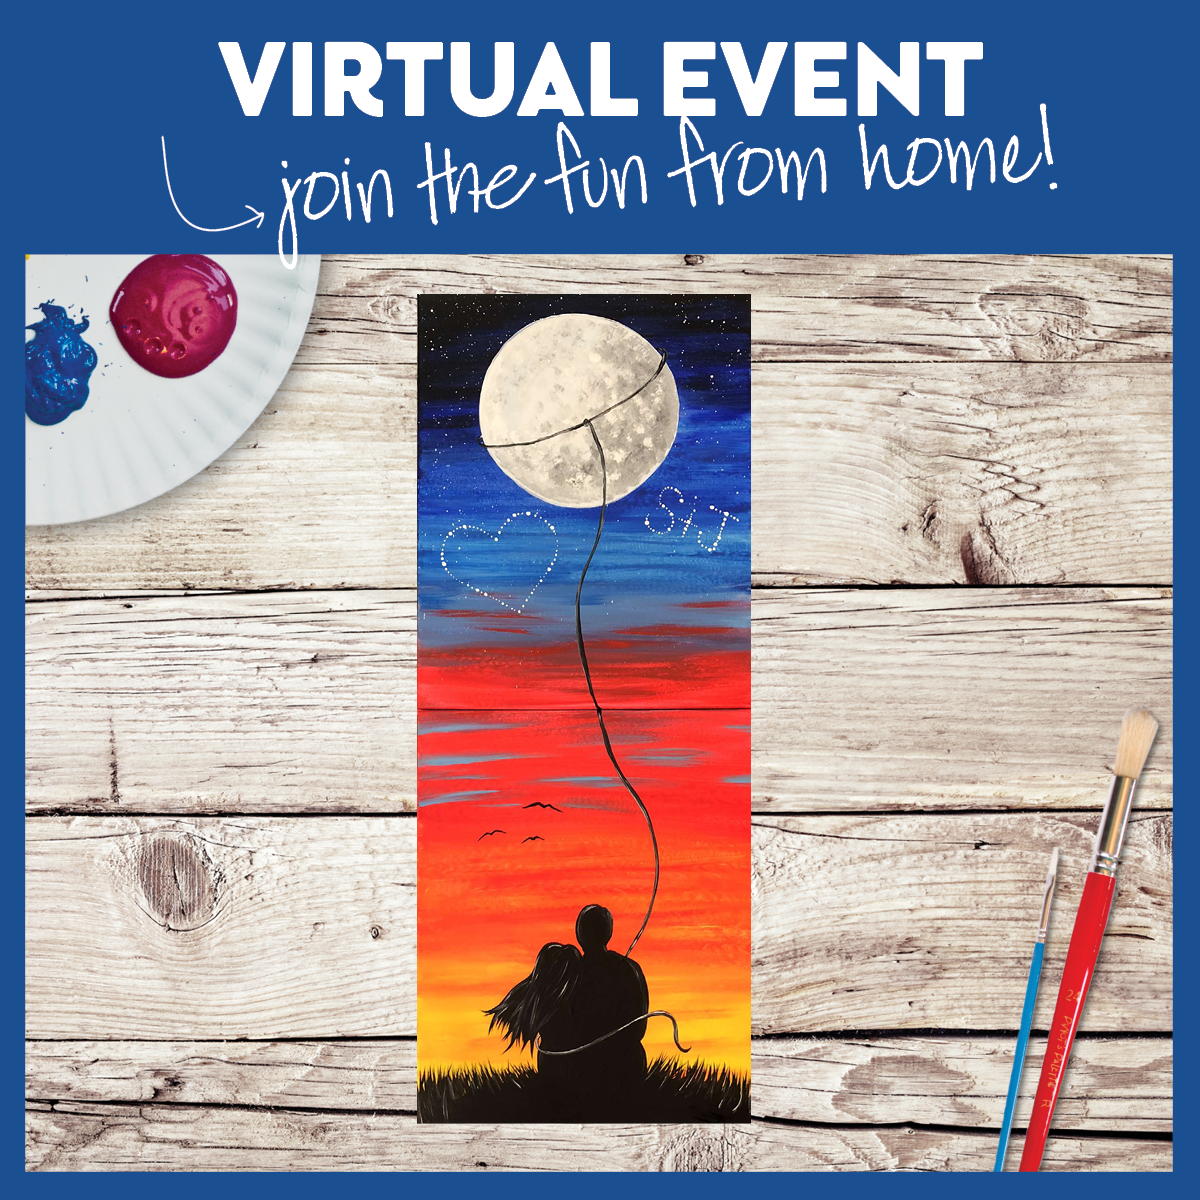 VIRTUAL OPTION LIVE, JOIN THE GROUP FROM HOME. FUNDRAISER FOR THE STEVEN B ROBBINS FOUNDATION